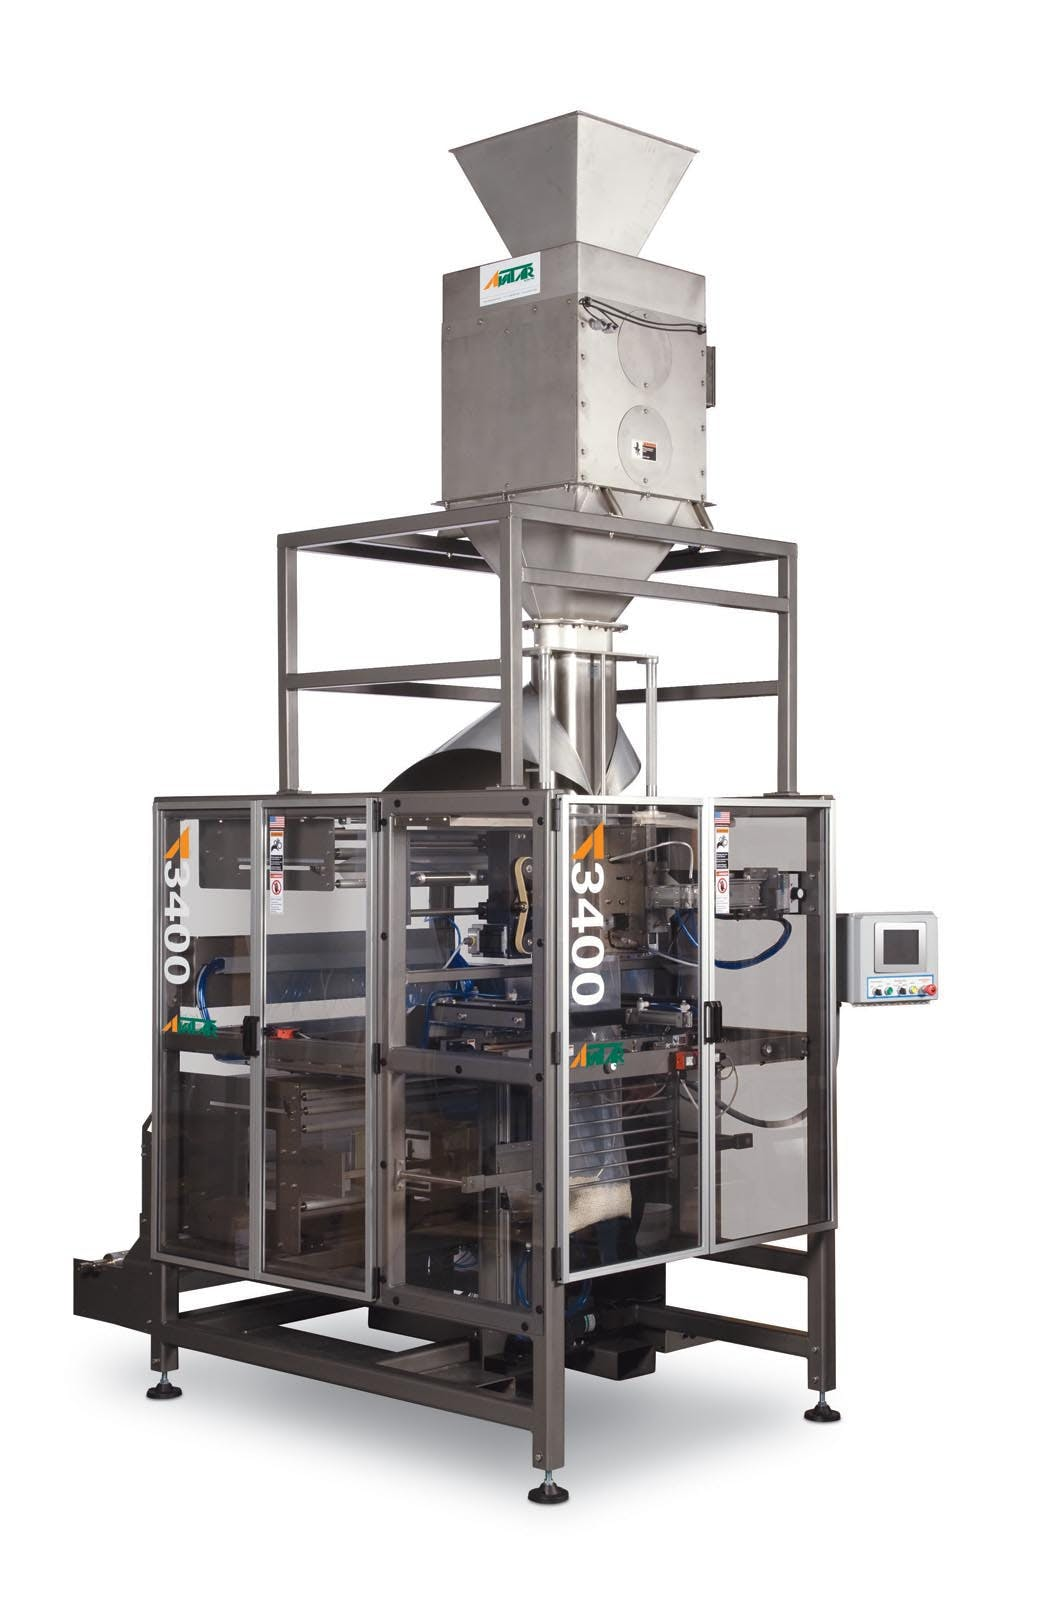 Model A-3400 (V/F/F/S) Form fill seal machine sold by All-Fill